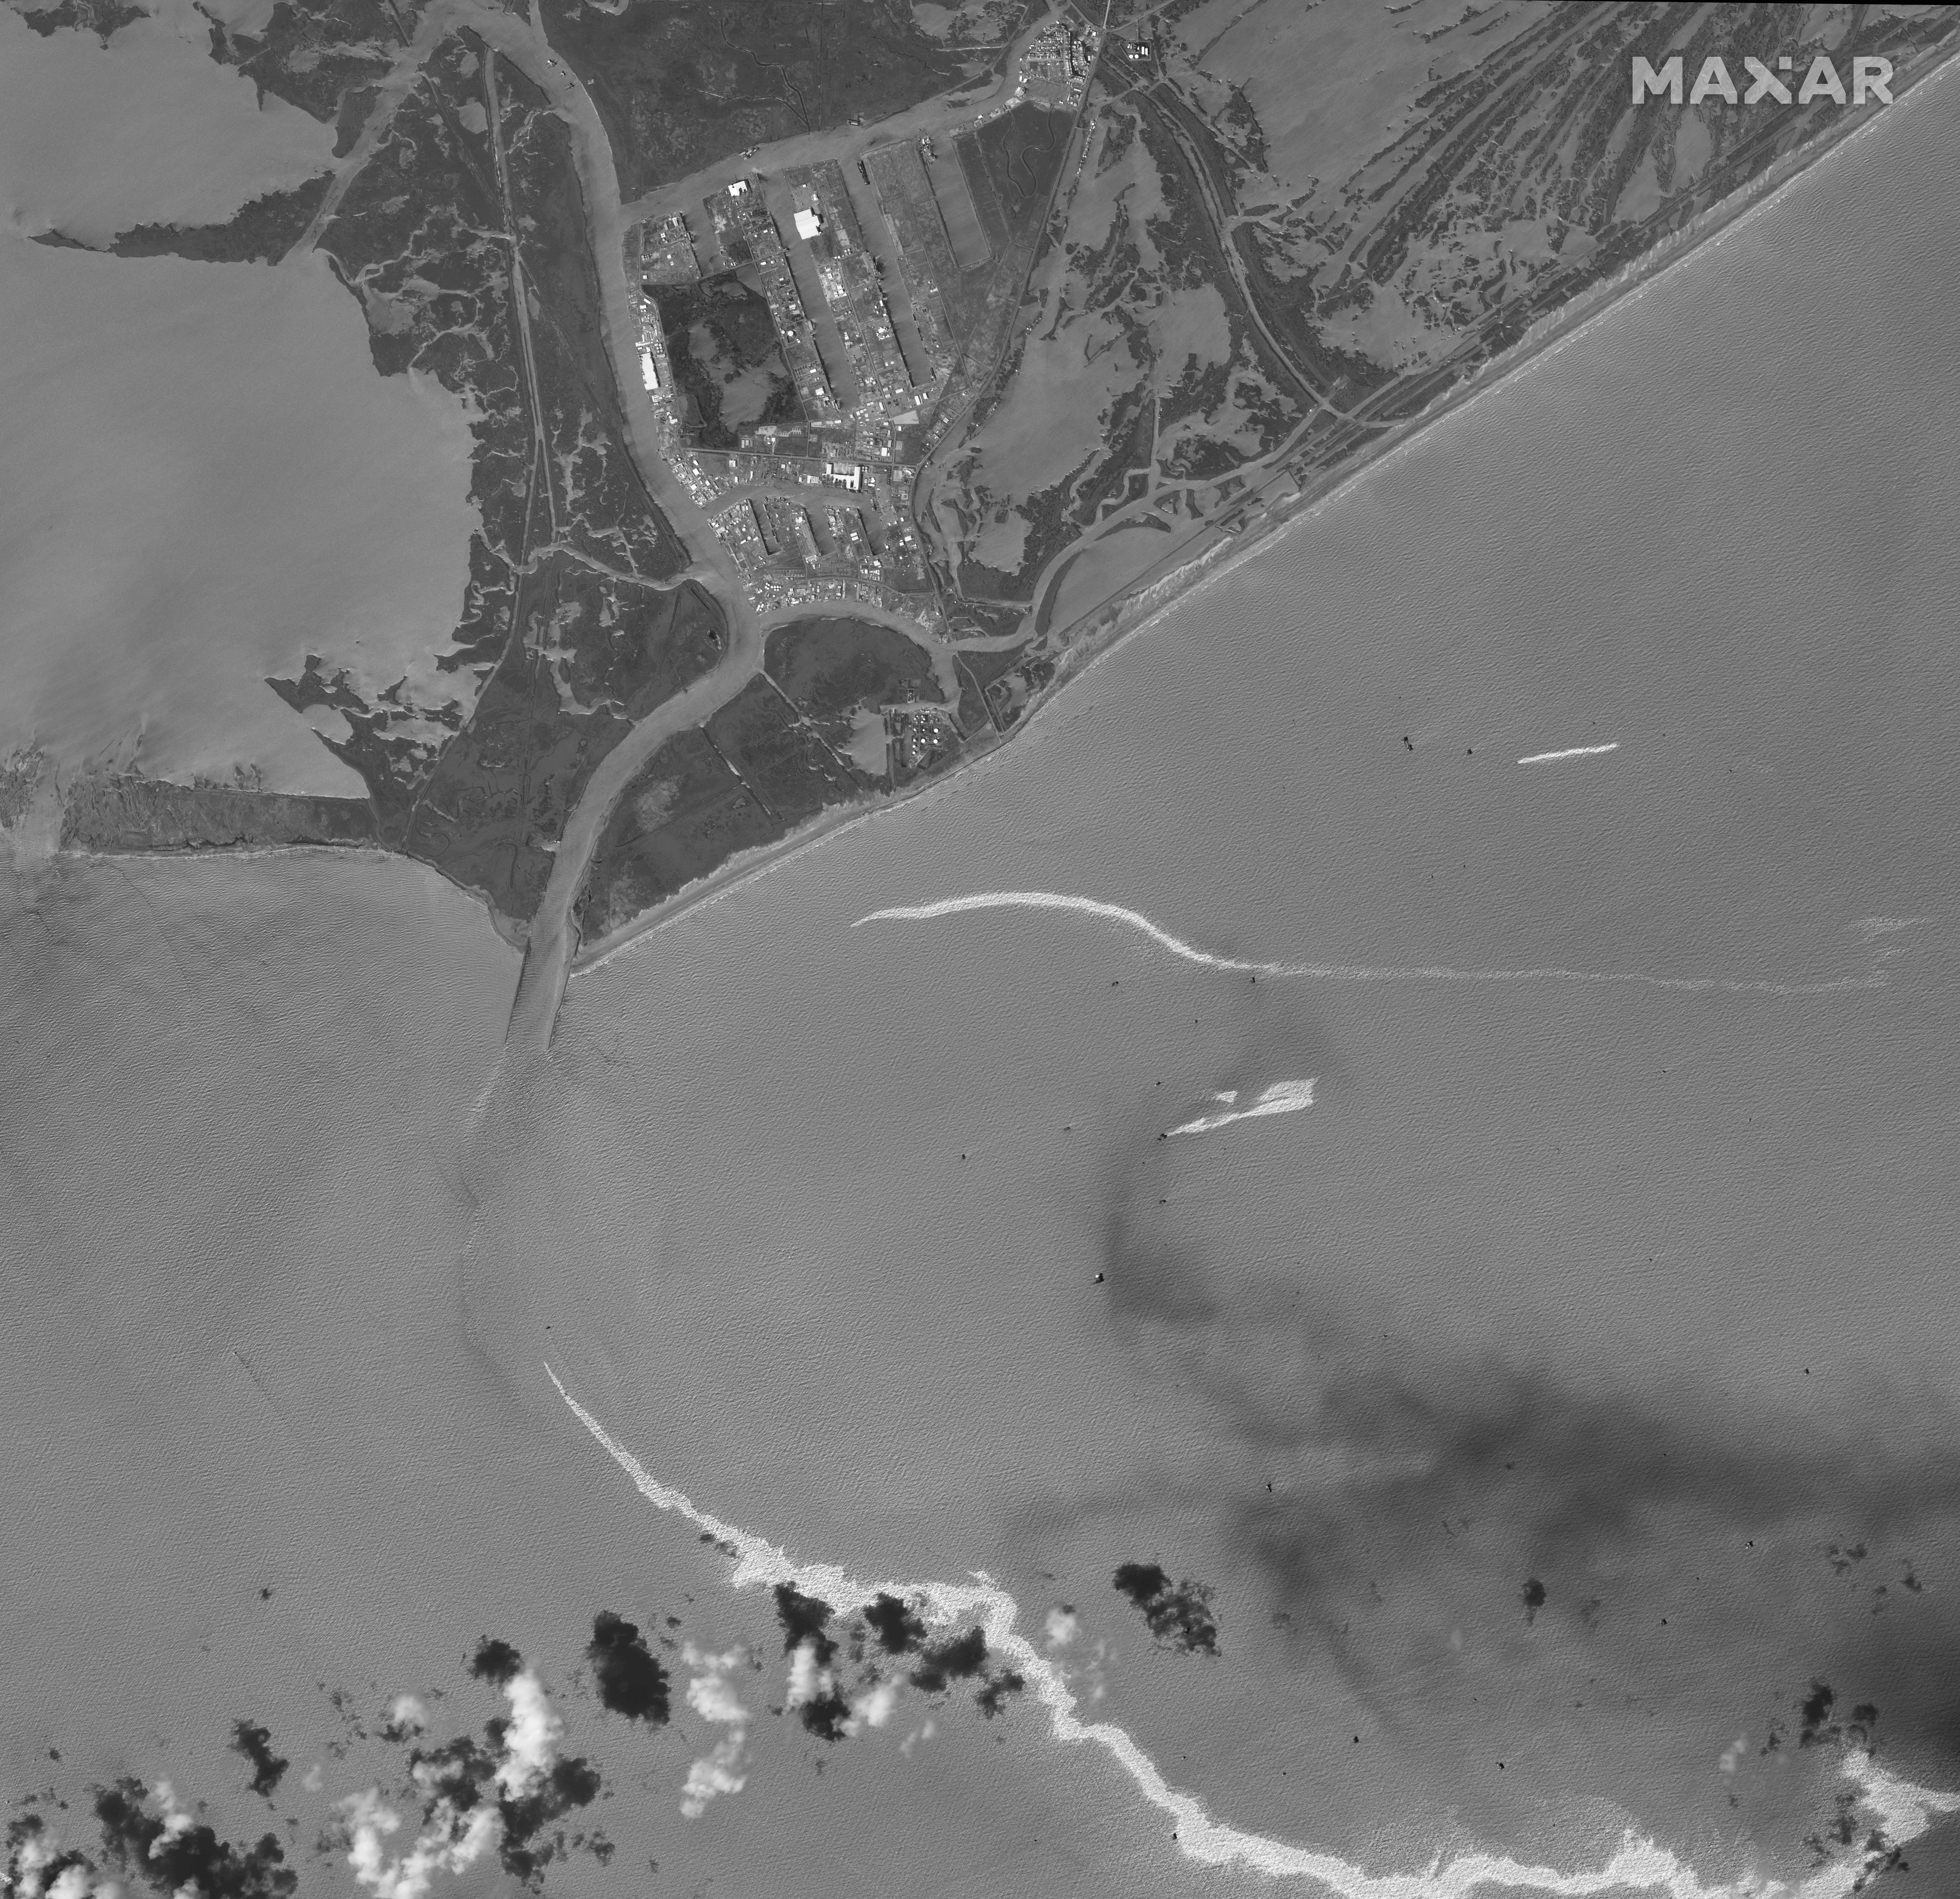 A black and white satellite image shows an overview of the port and an oil slick following Hurricane Ida, Port Fourchon, Louisiana, U.S., September 2, 2021. Satellite image 2021 Maxar Technologies/Handout via REUTERS